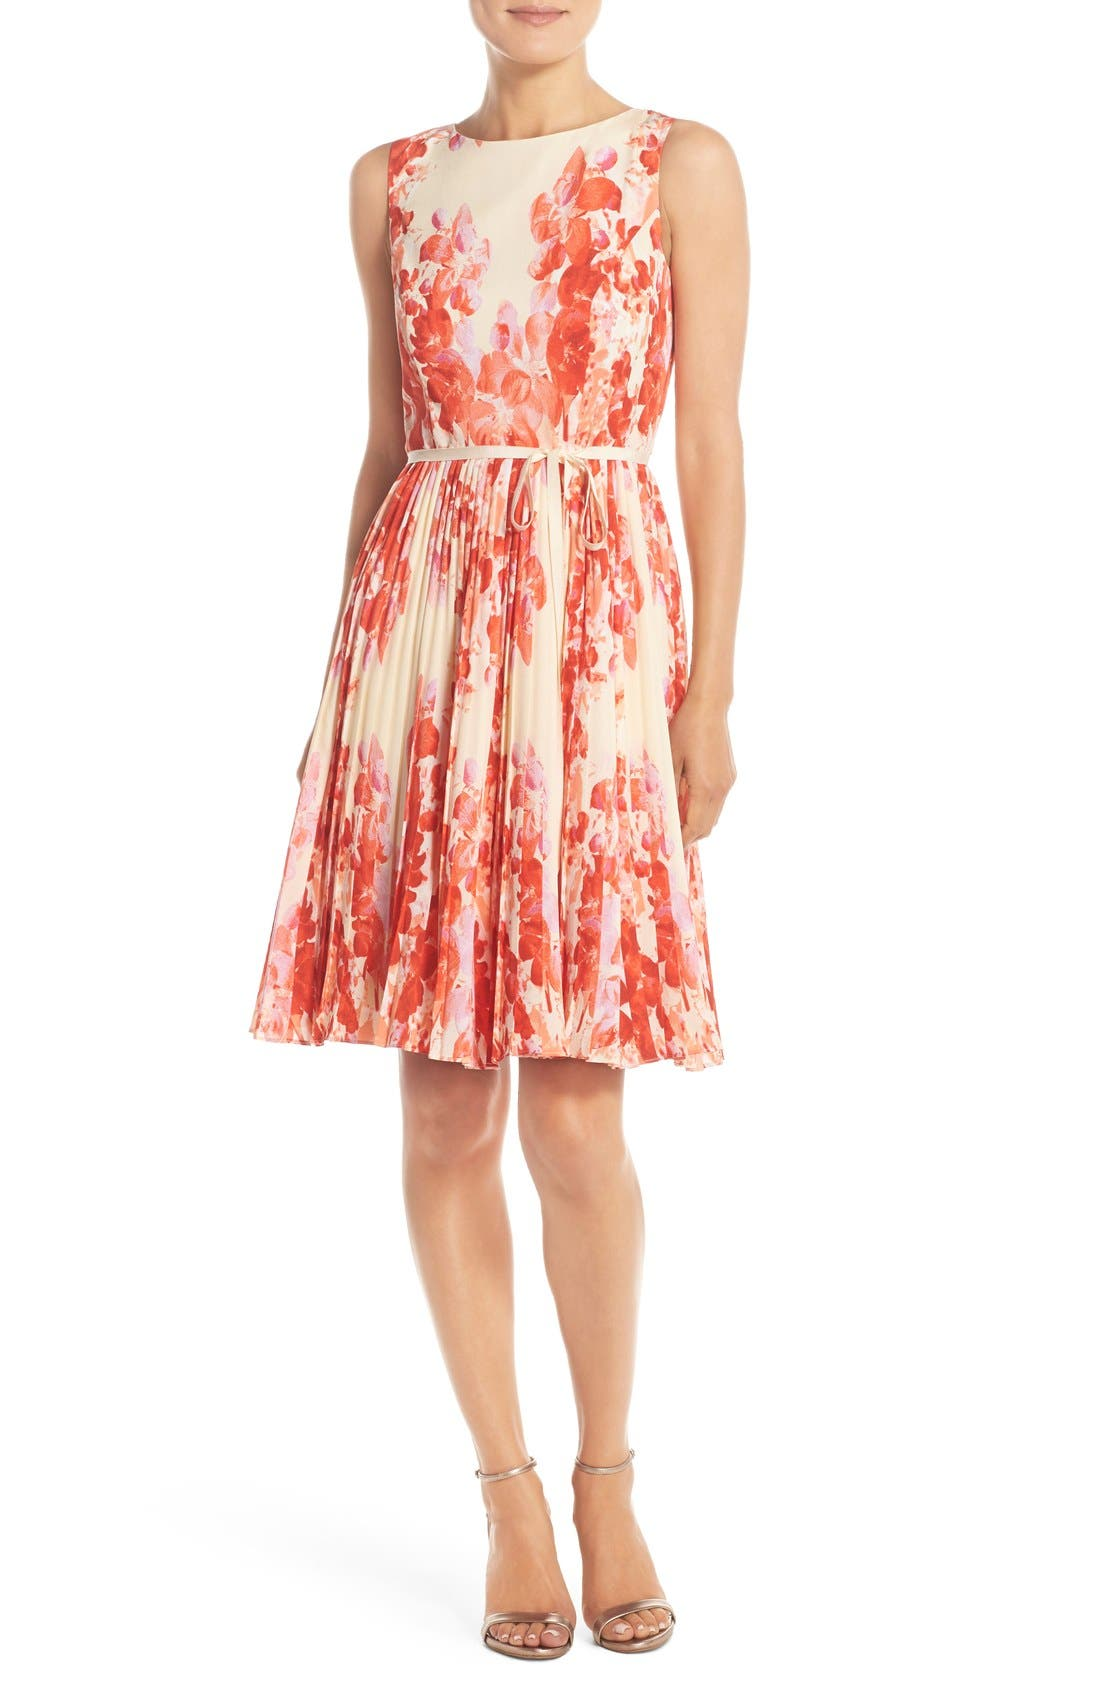 Adrianna Papell Floral Print Pleat Fit & Flare Dress